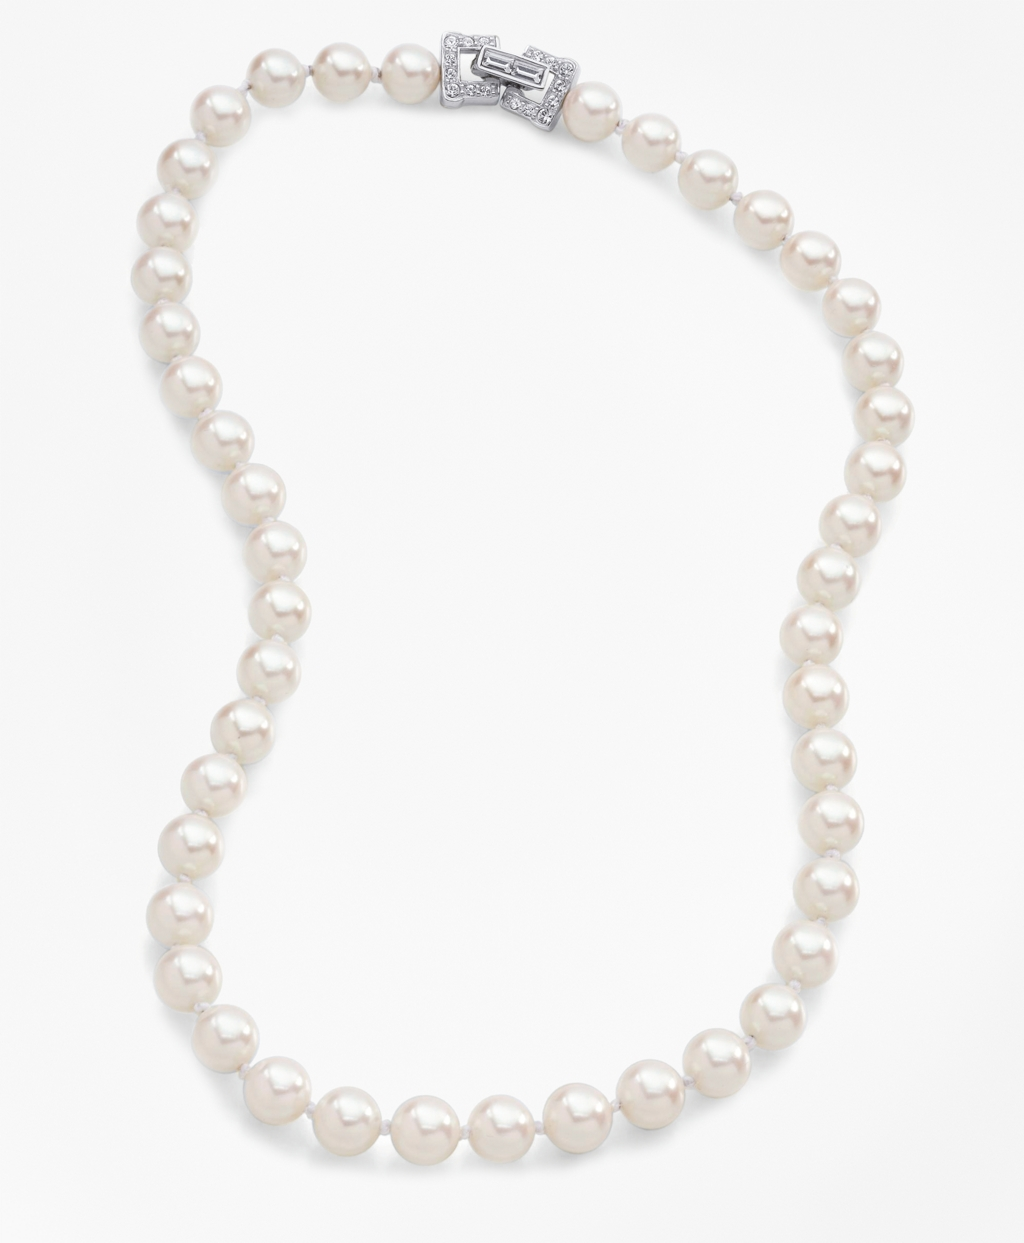 1940s Jewelry Styles and History Brooks Brothers Womens Glass Pearl Necklace $298.00 AT vintagedancer.com